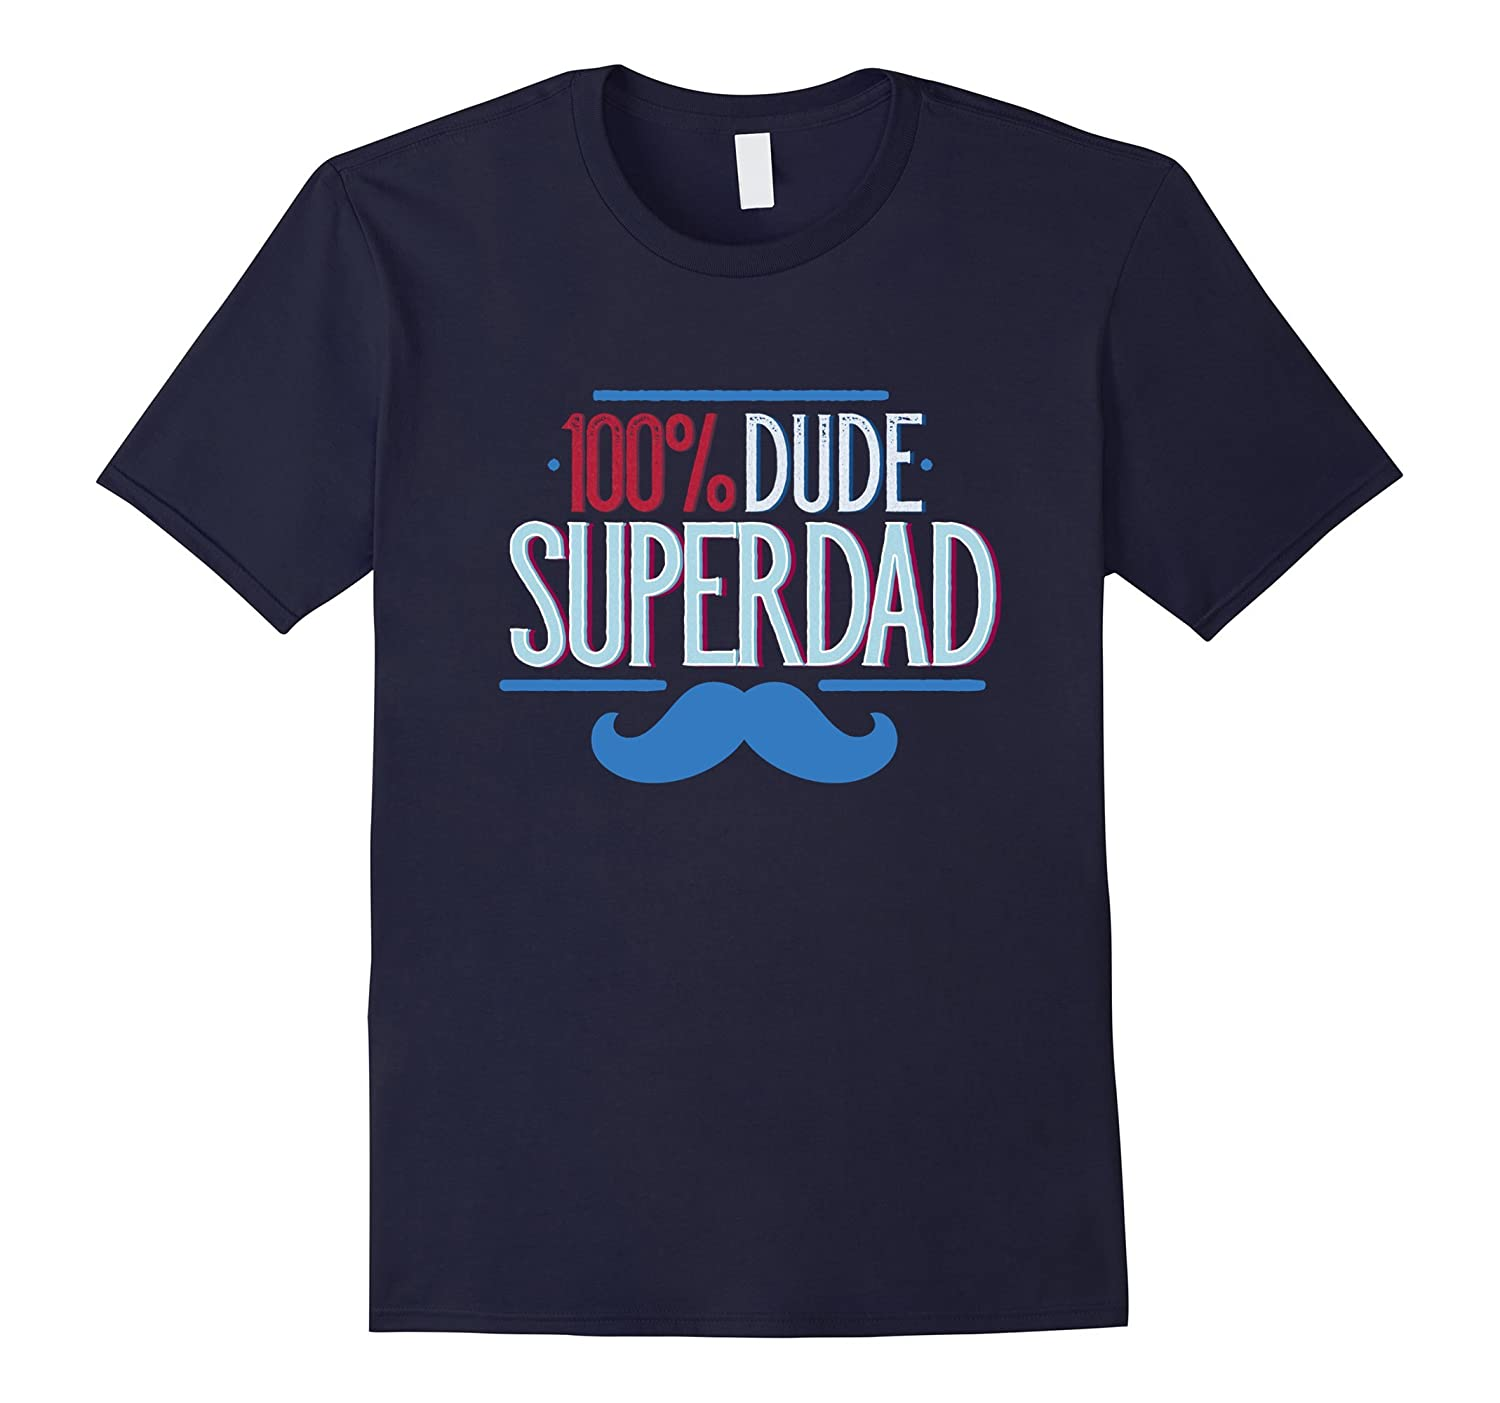 100 Dude SuperDad T-shirt for Your Awesome Dad-Vaci